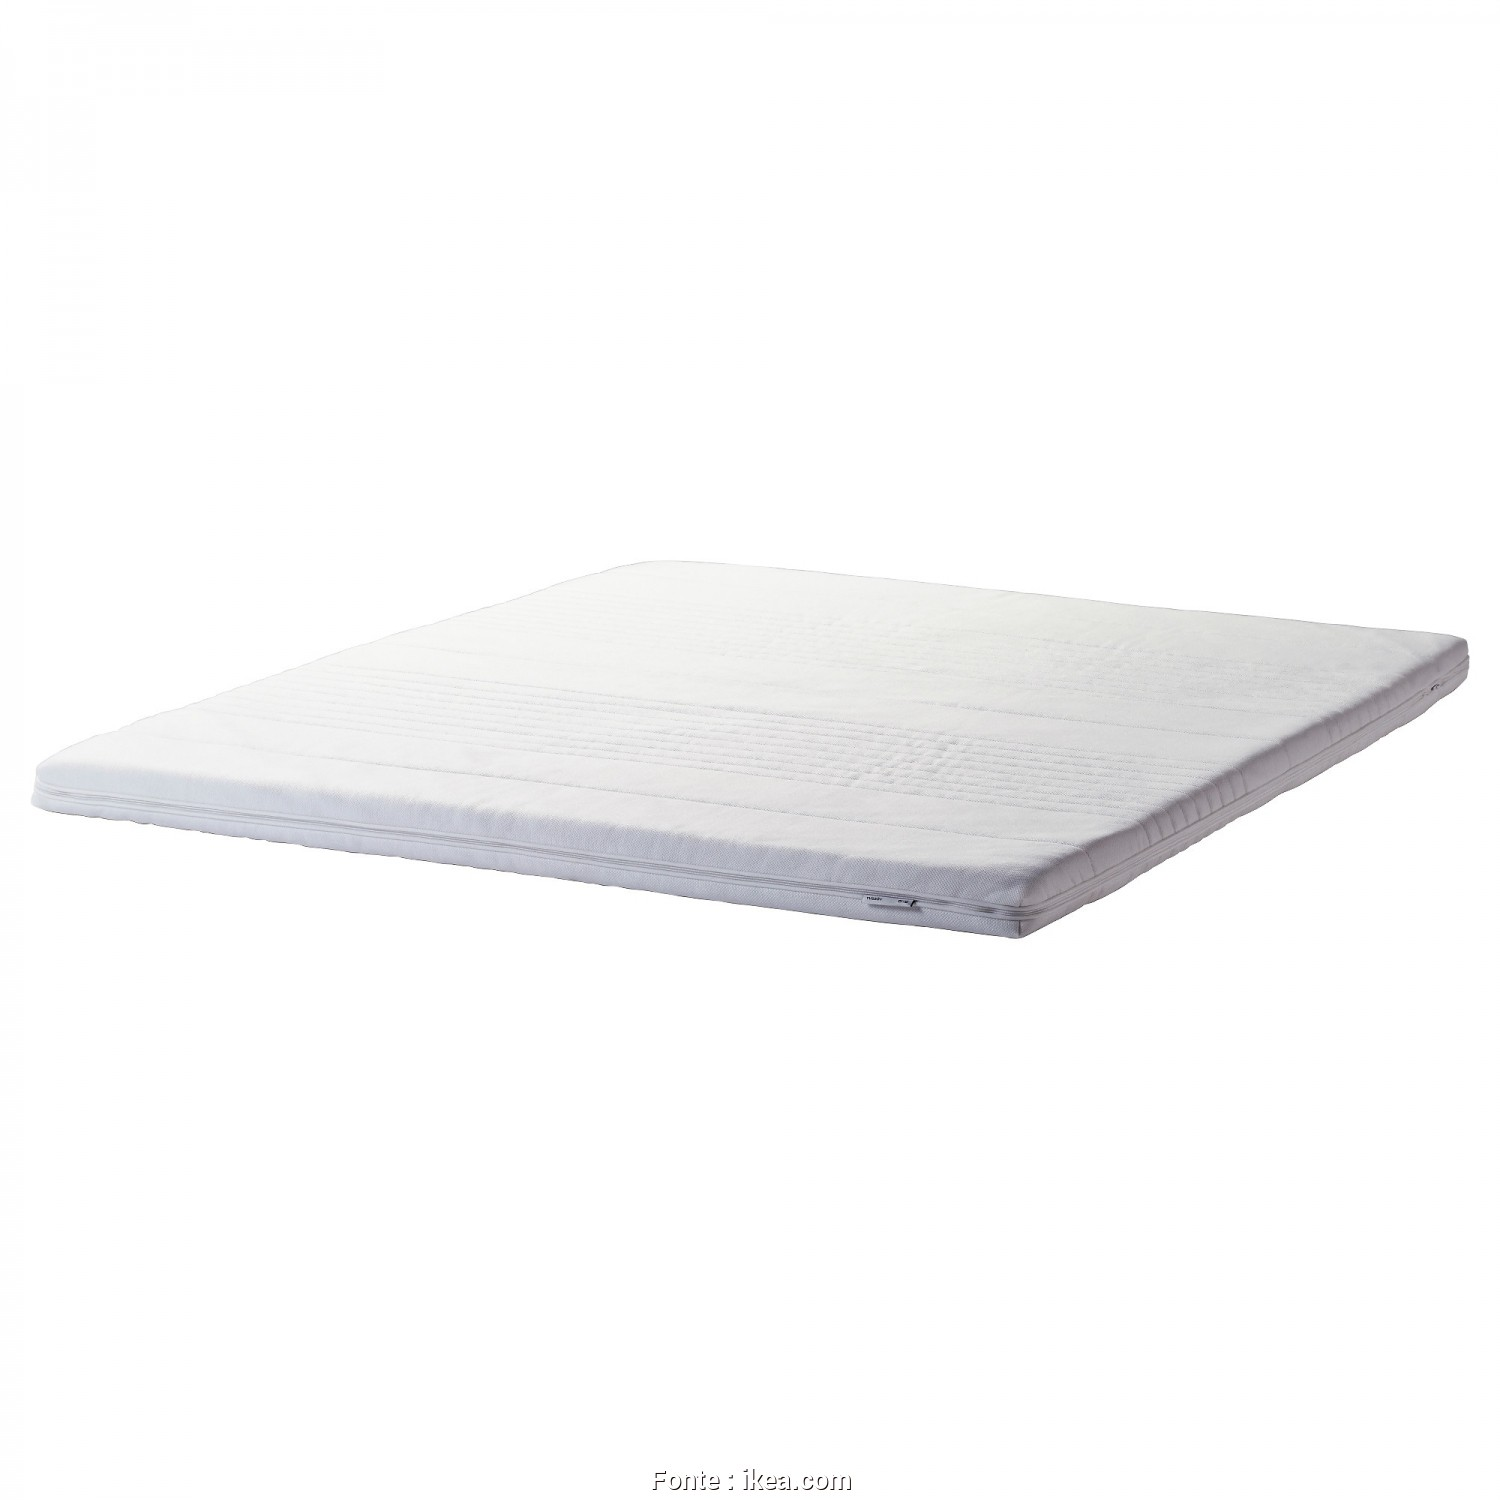 Beddinge Ikea Mattress, Loveable IKEA TUSSÖY Mattress Topper Easy To Bring Home Since It Is Roll Packed